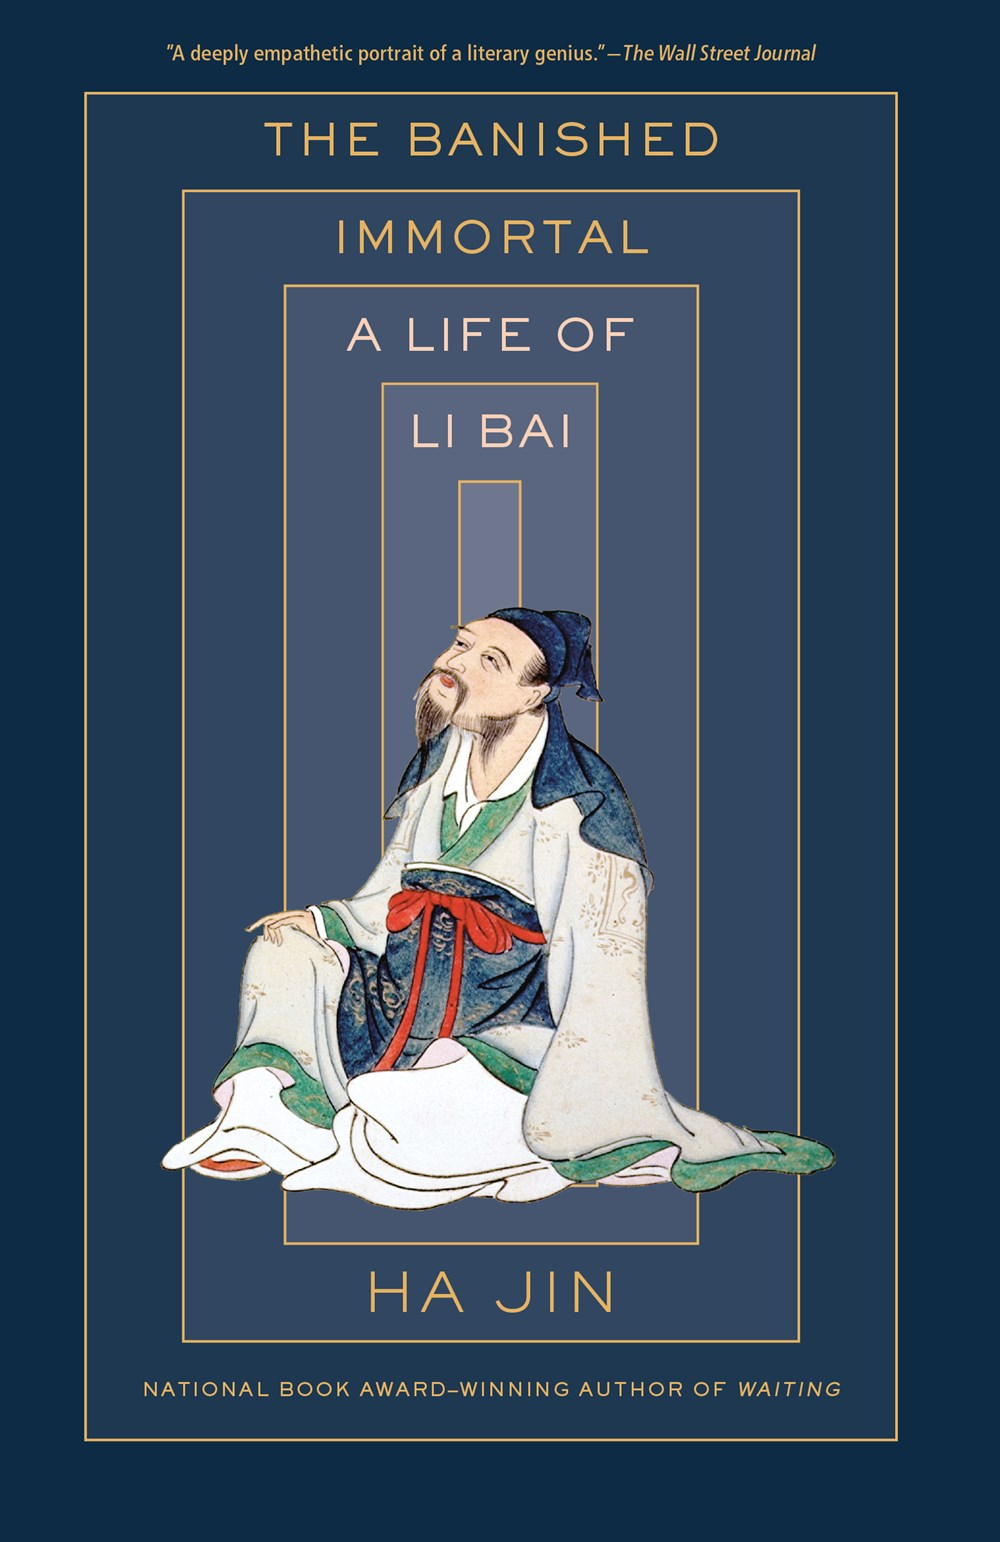 The Banished Immortal: A Life of Li Bai (Li Po)